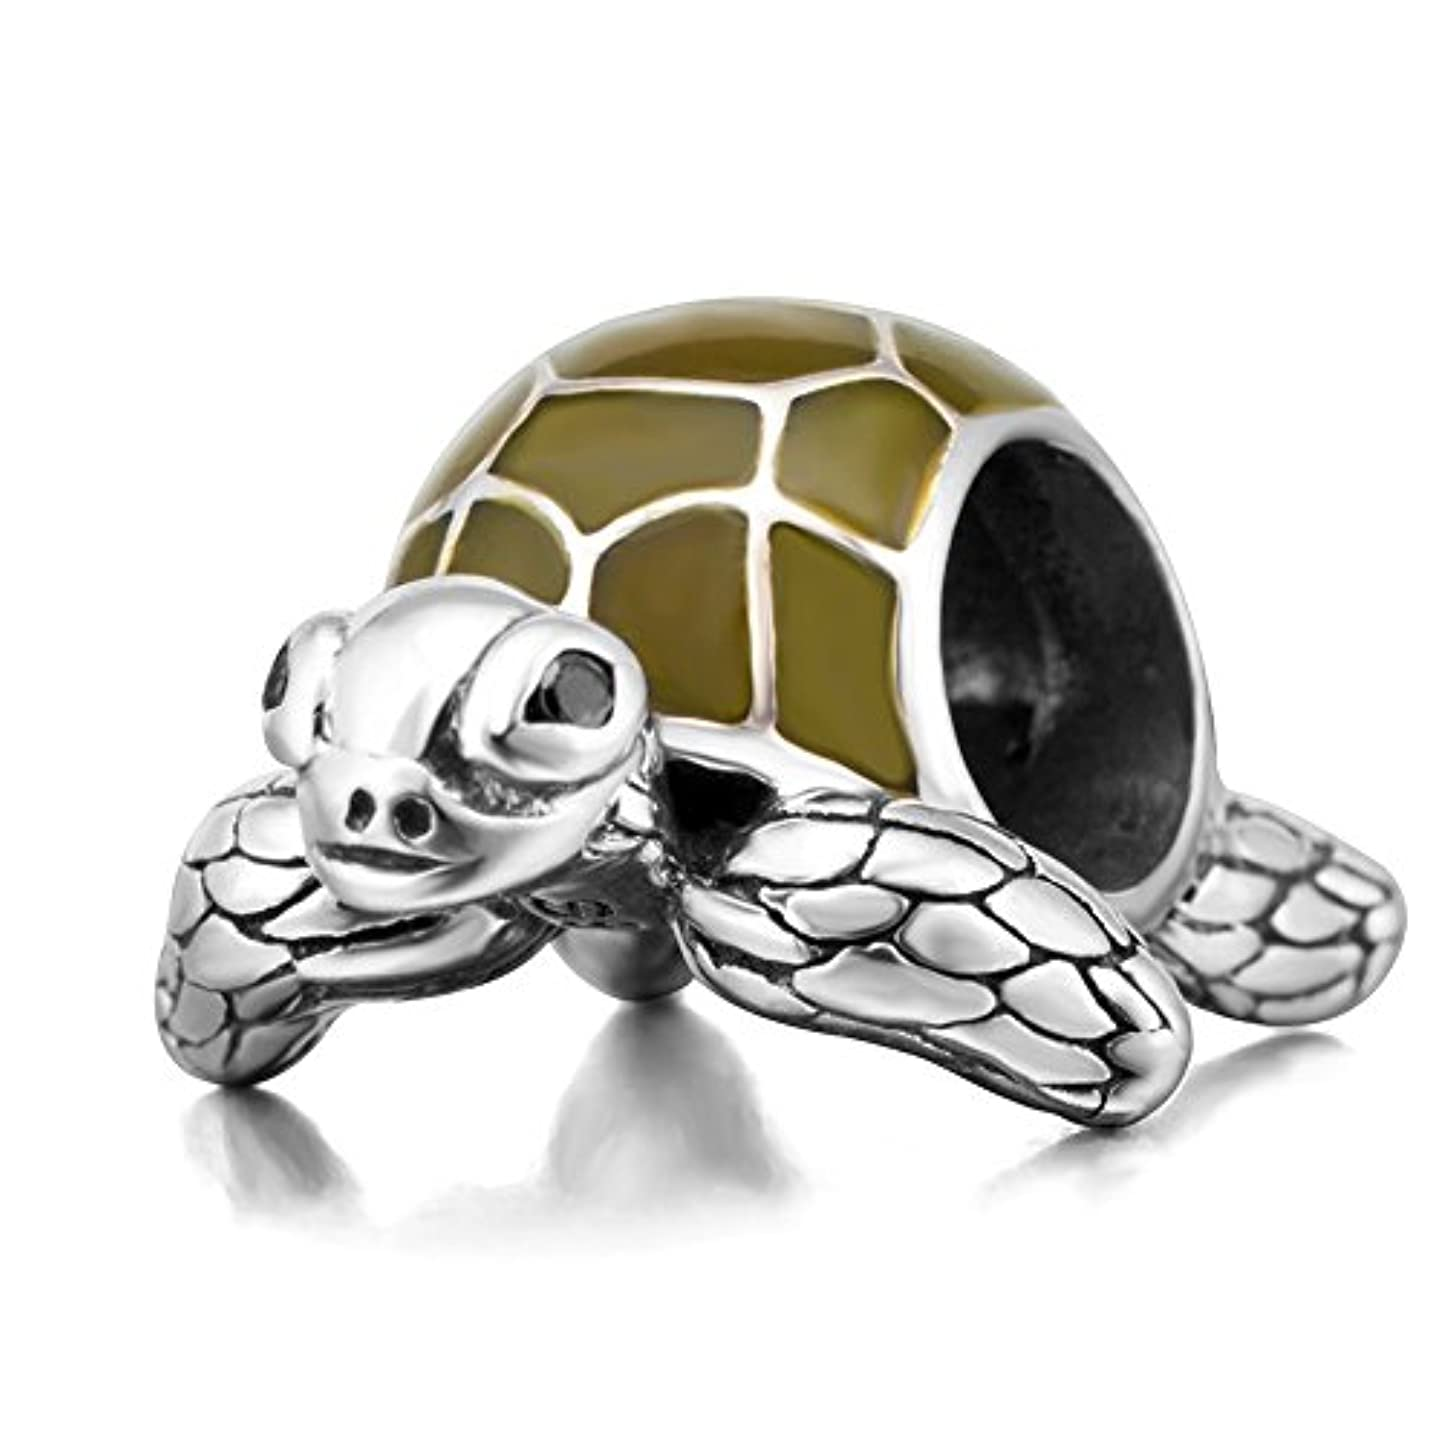 Sea Turtle Charm 925 Sterling Silver Beads fit for DIY Charm Bracelet & Necklace (Olive green)